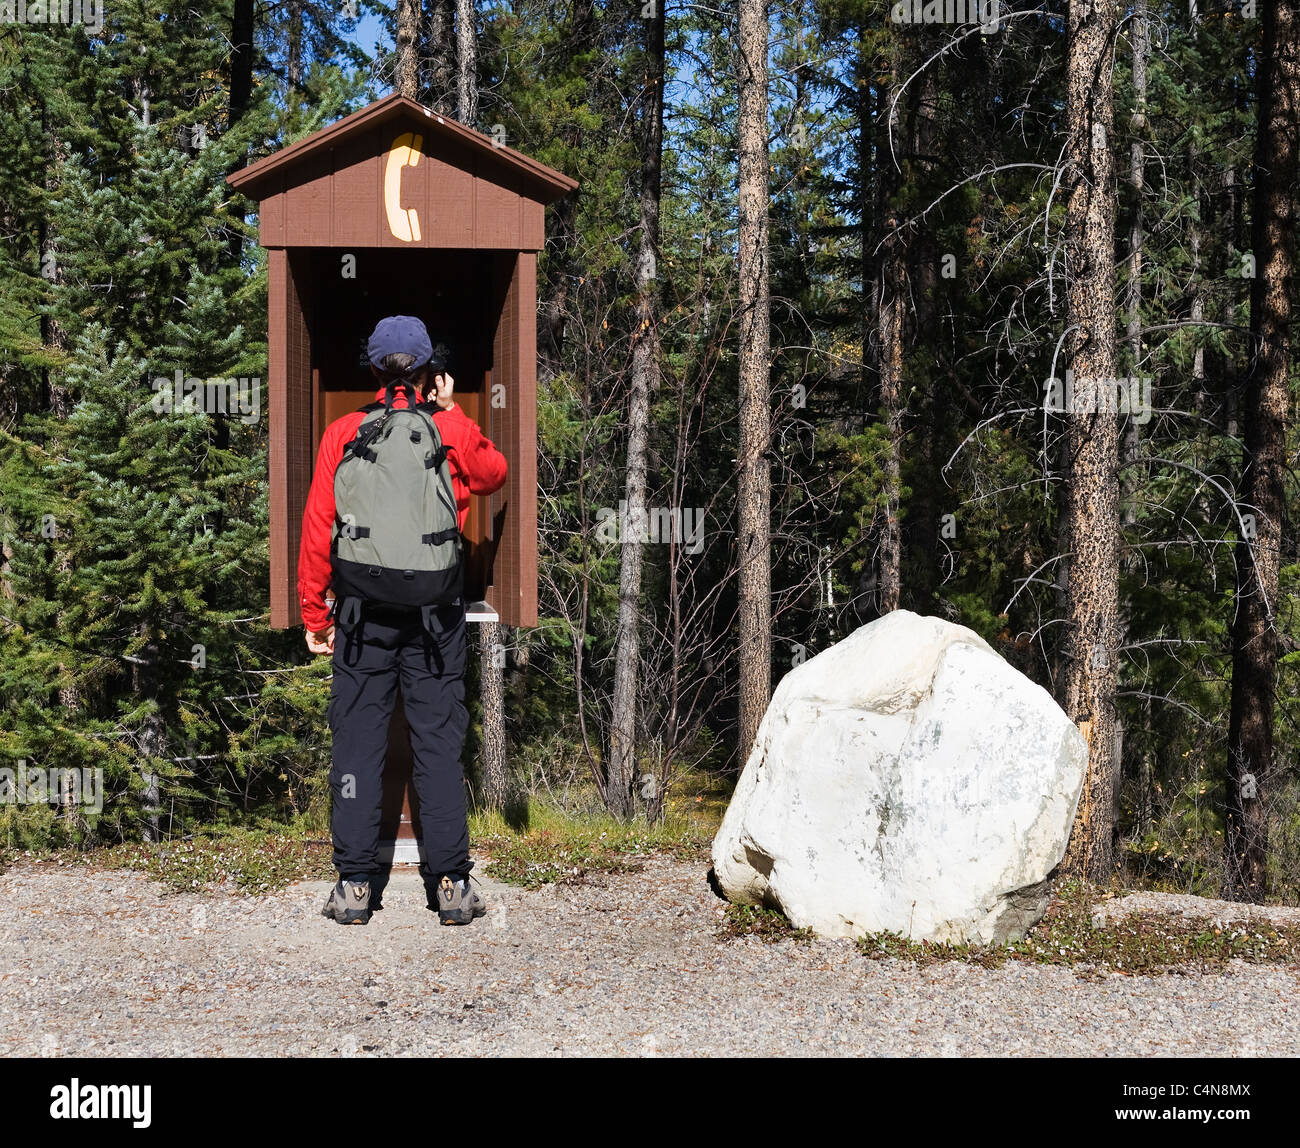 Hiker calling on outdoor pay phone, Jasper National Park, Alberta, Canada. - Stock Image